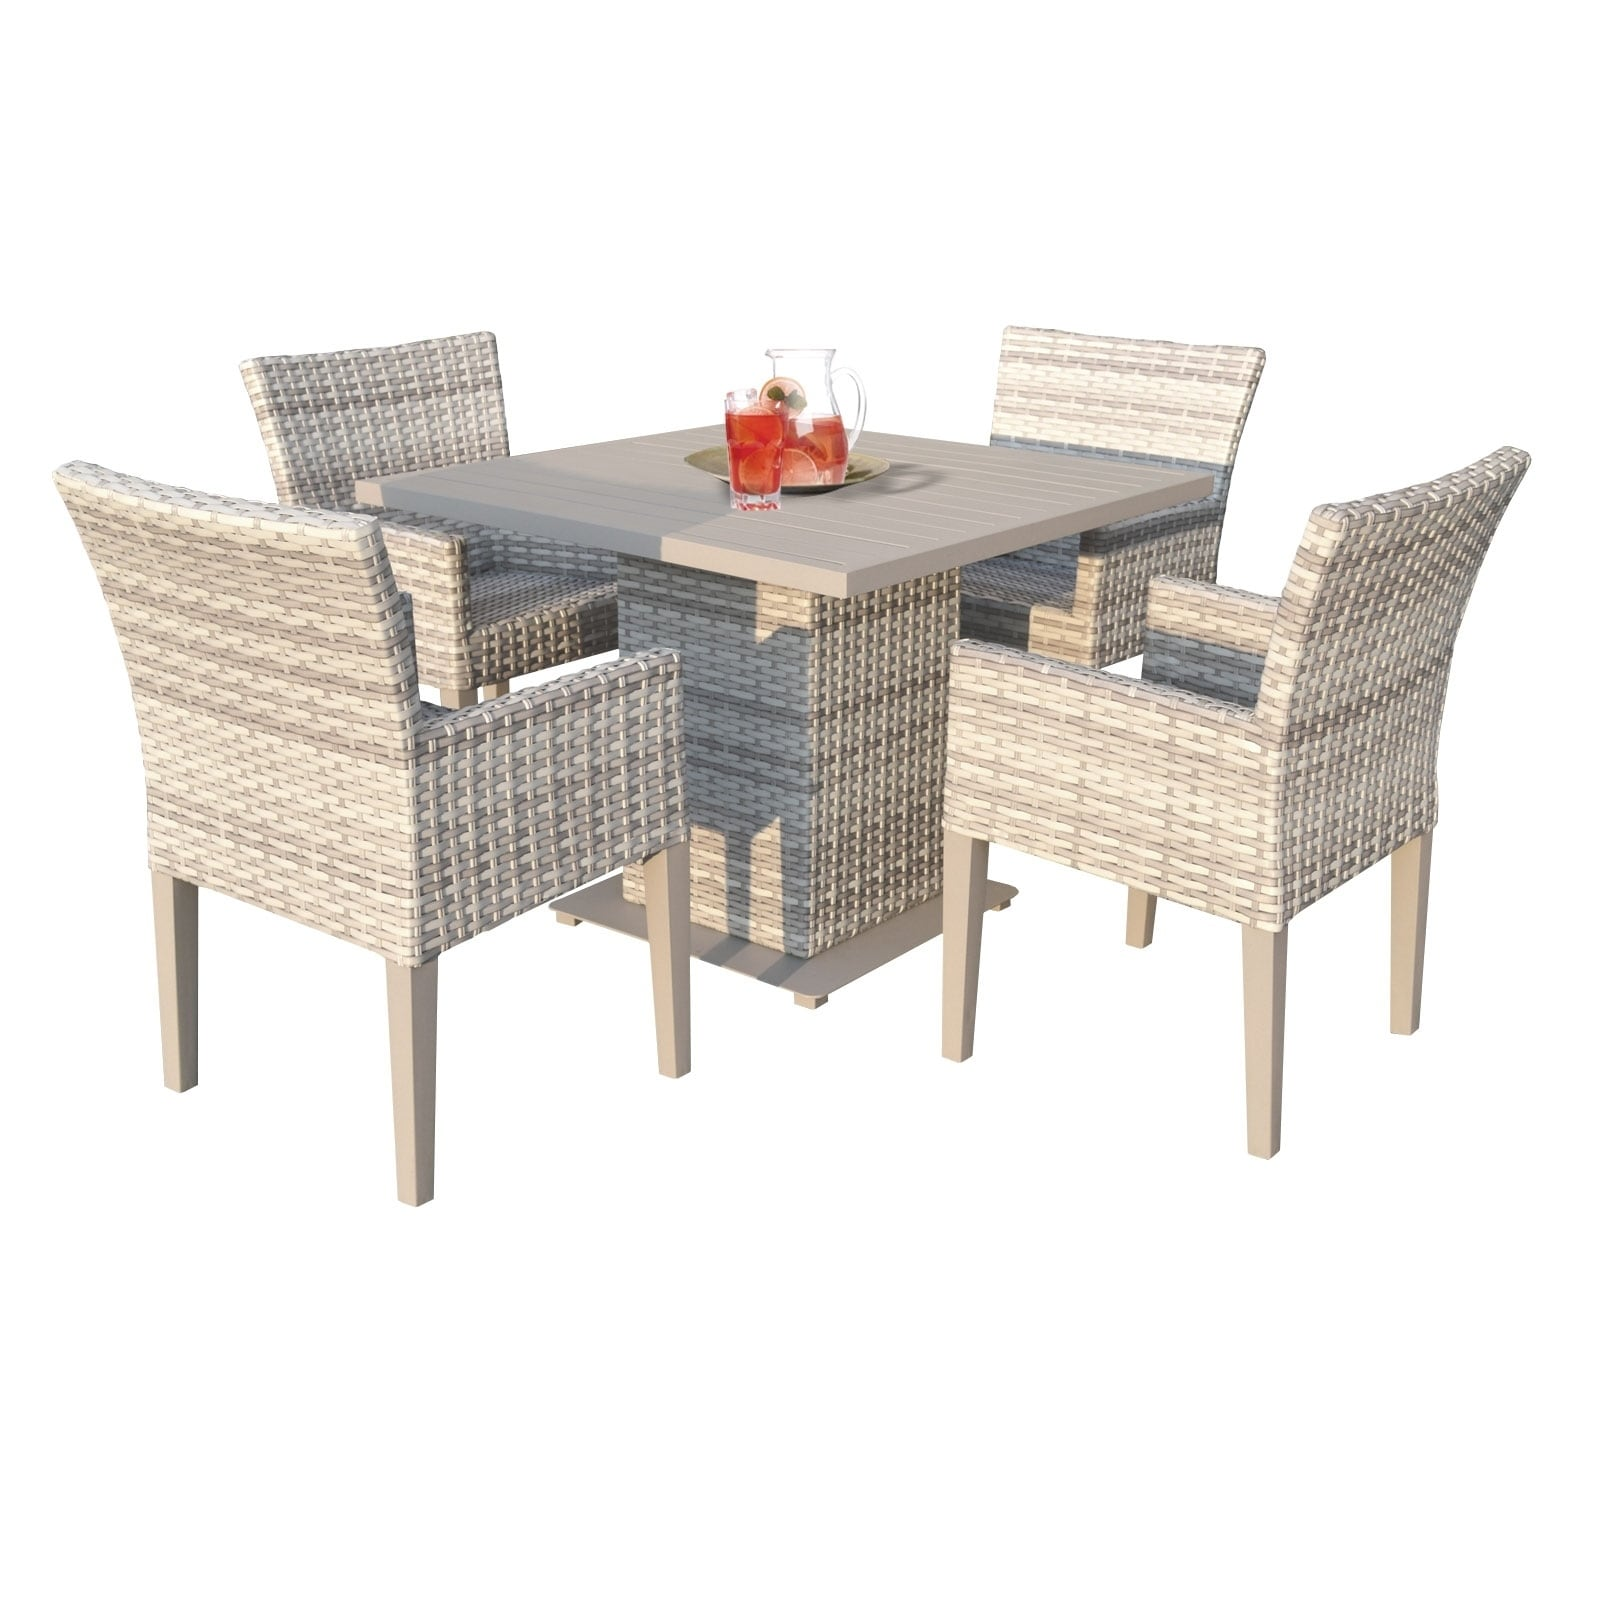 Shop Catamaran Outdoor Patio Square Wicker Dining Table With 4 Arm Chairs